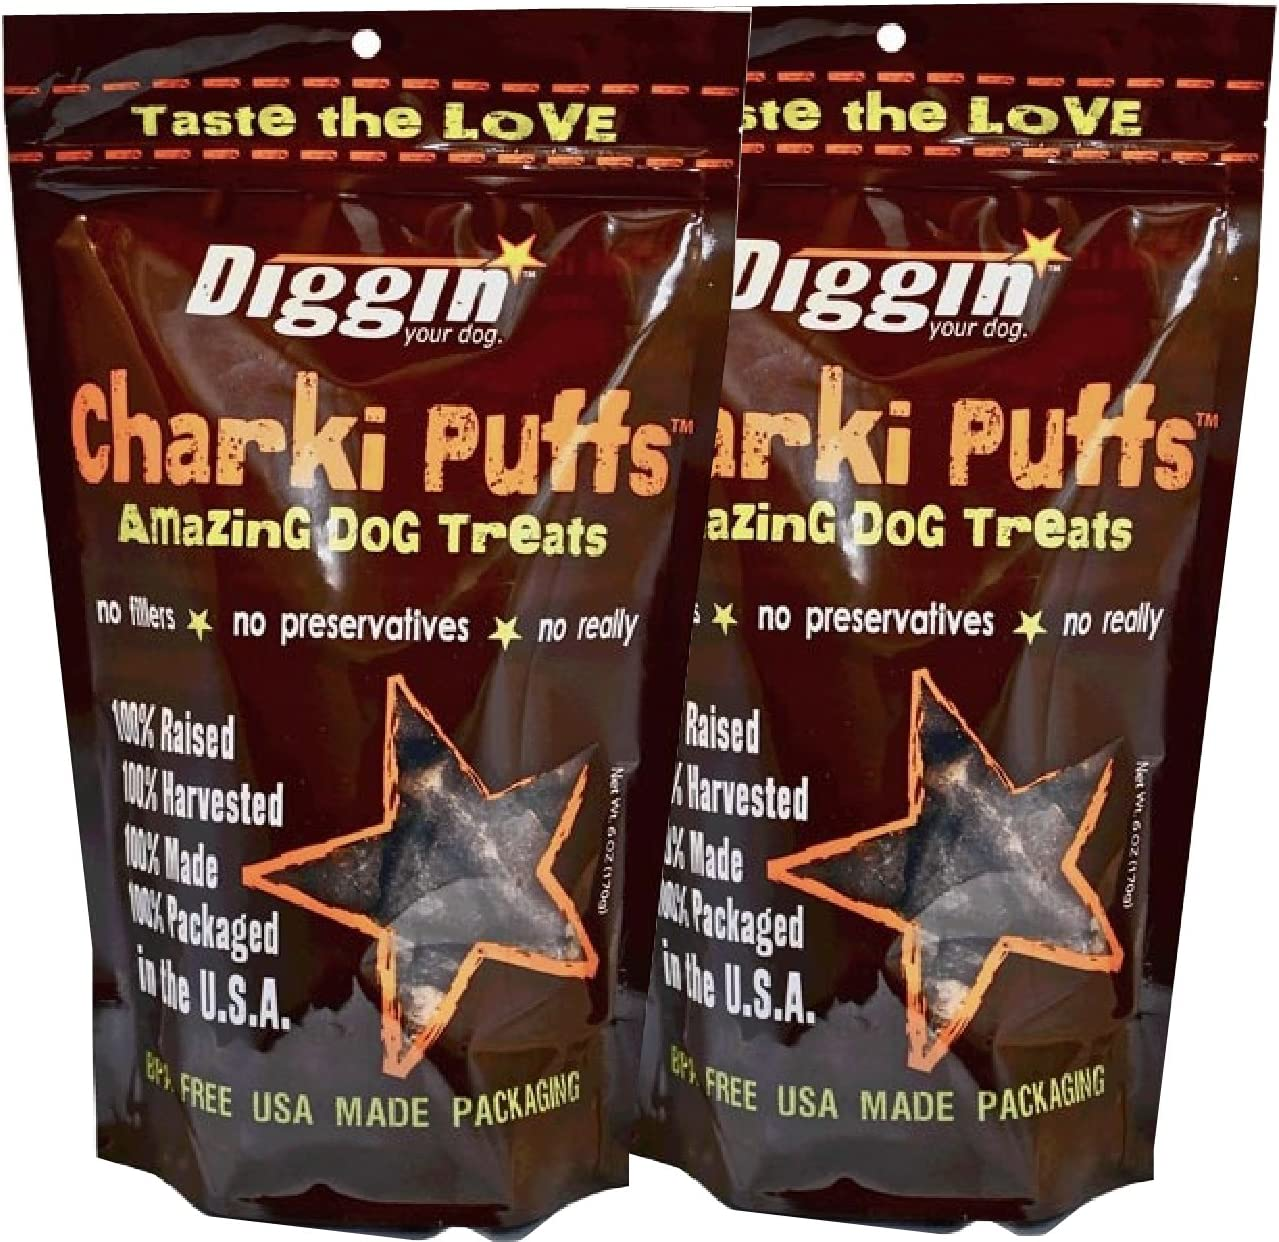 2-Pack Diggin Your Dog Charki Puffs Amazing Dog Treats